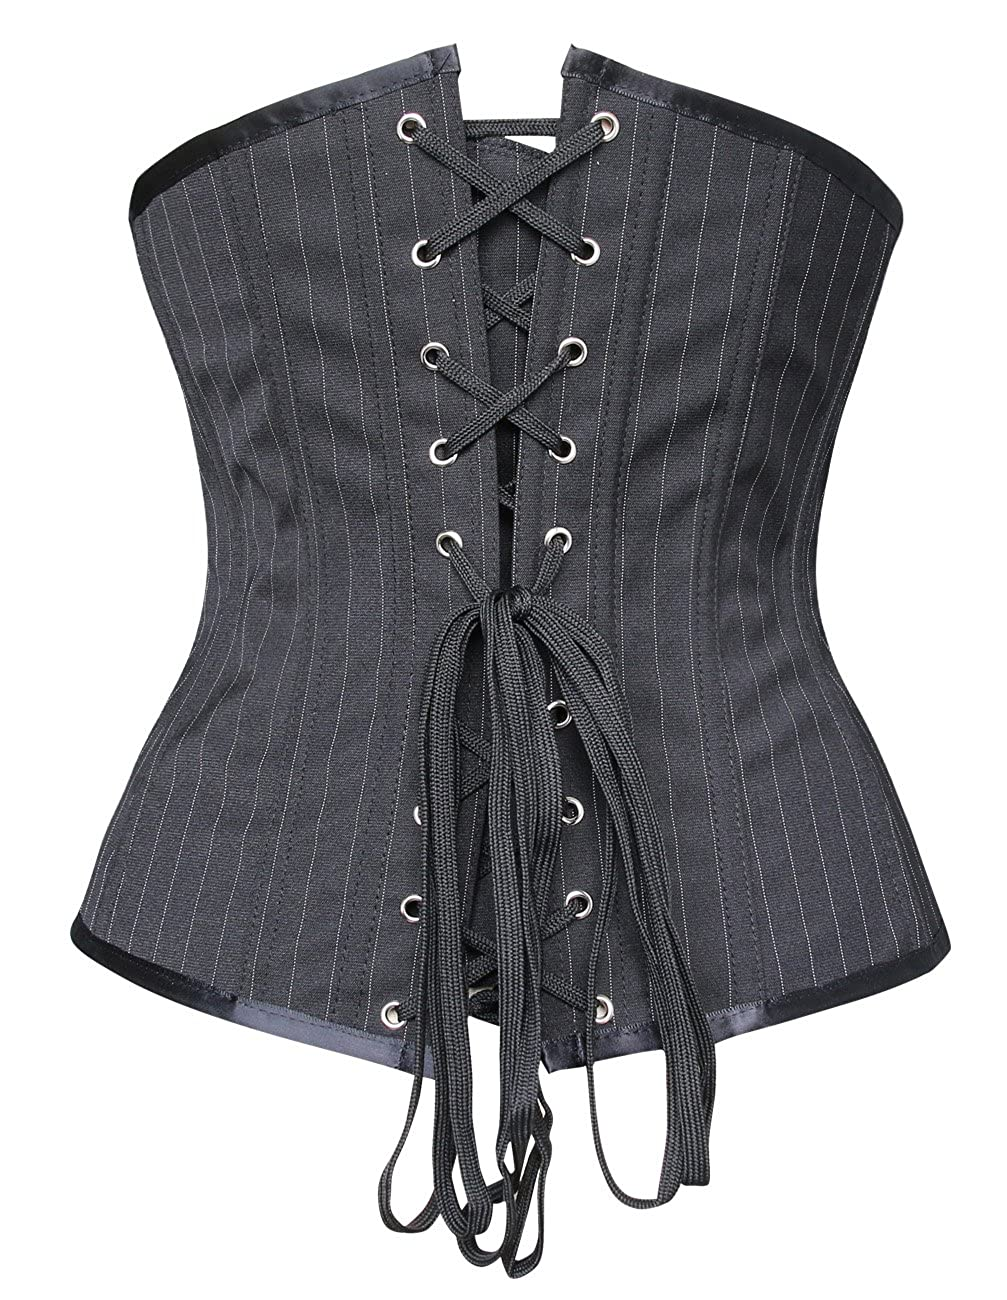 2cd7465a3b Charmian Women s Steampunk Gothic Waist Cincher Stripe Buckles Underbust  Corset at Amazon Women s Clothing store